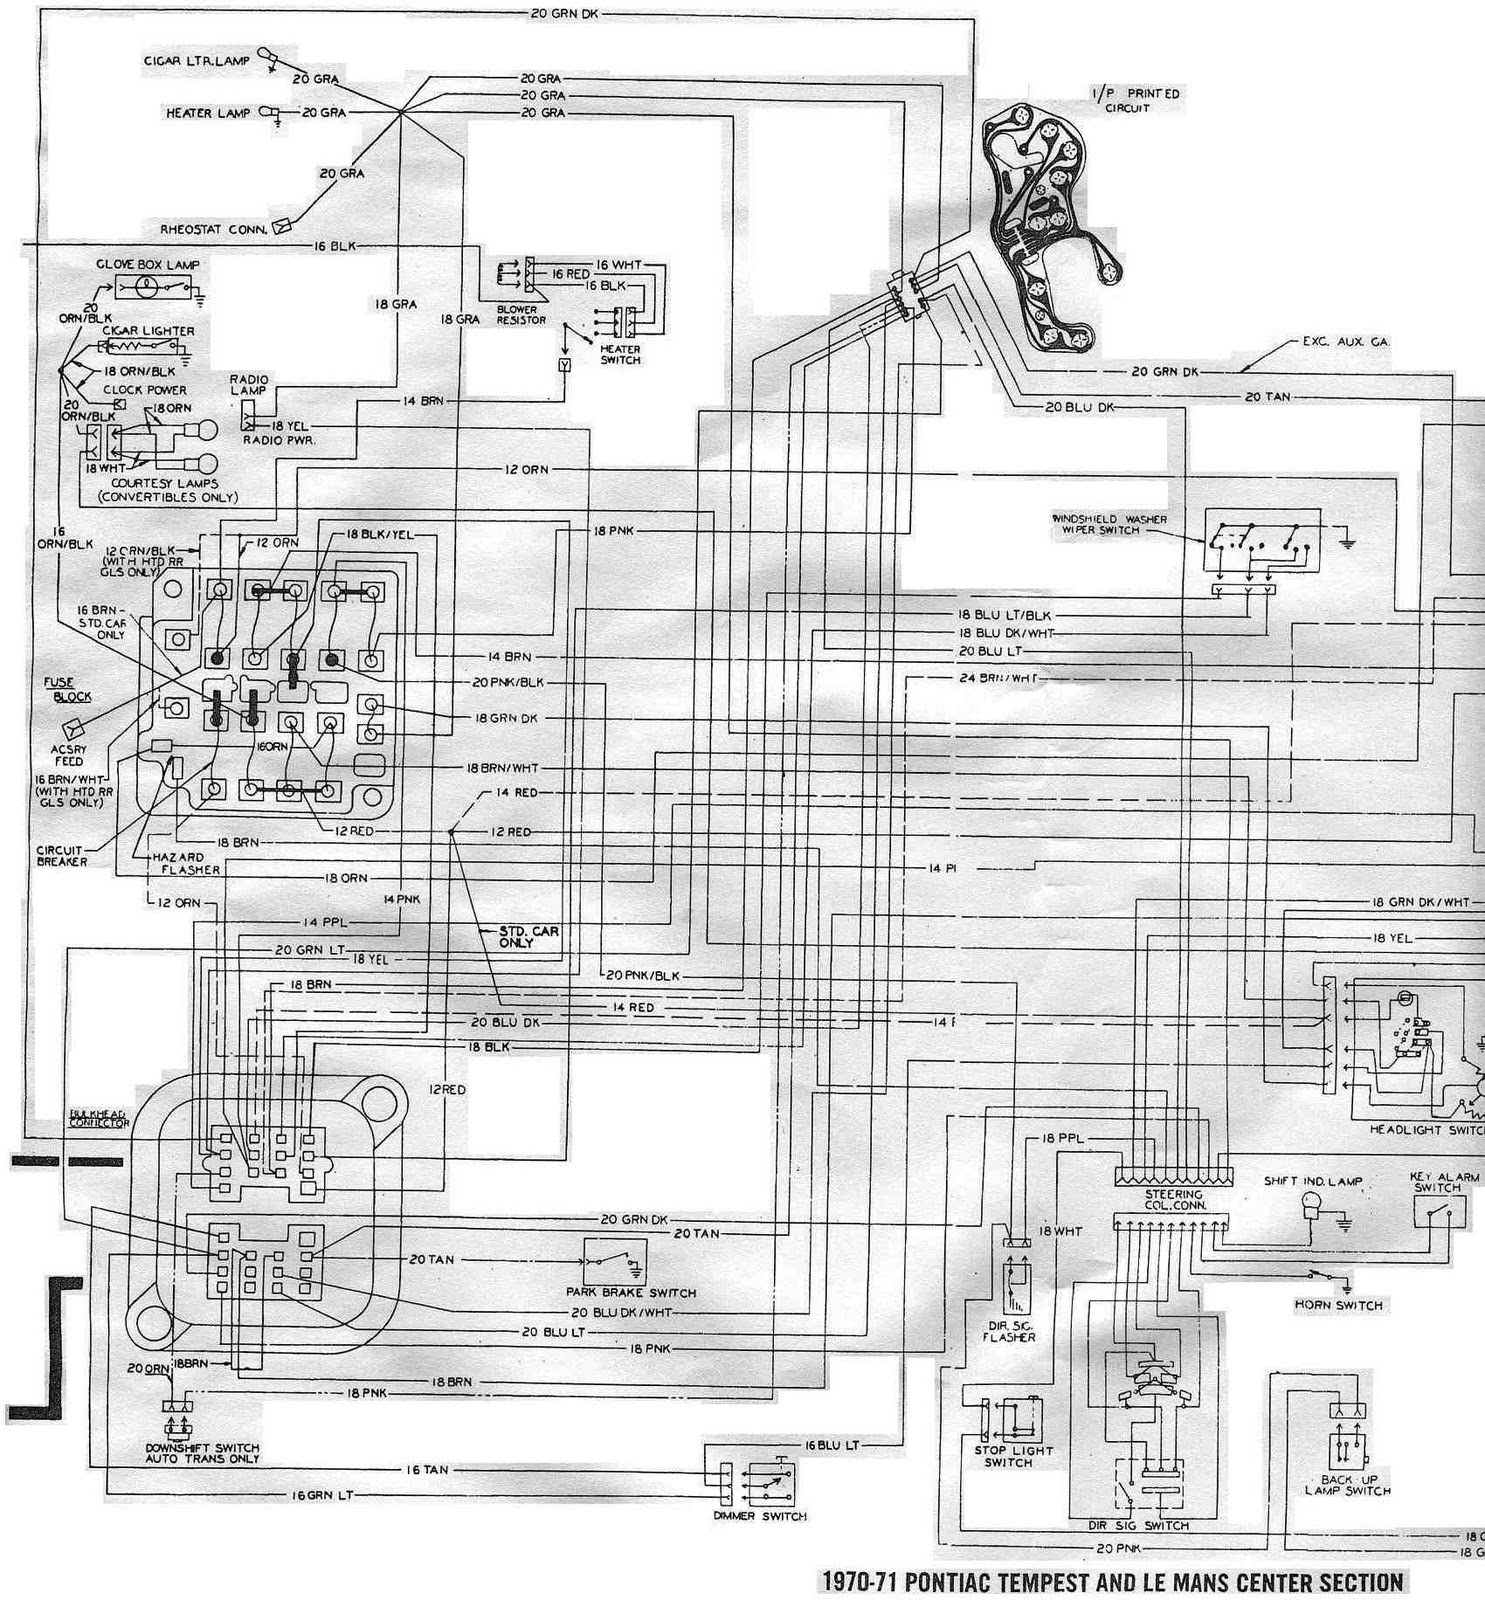 Pontiac+Tempest+and+LeMans+1970 1971+Center+Section+Schematic+Diagram pontiac tempest and lemans 1970 1971 center section schematic 1967 gto wiring diagram at cita.asia